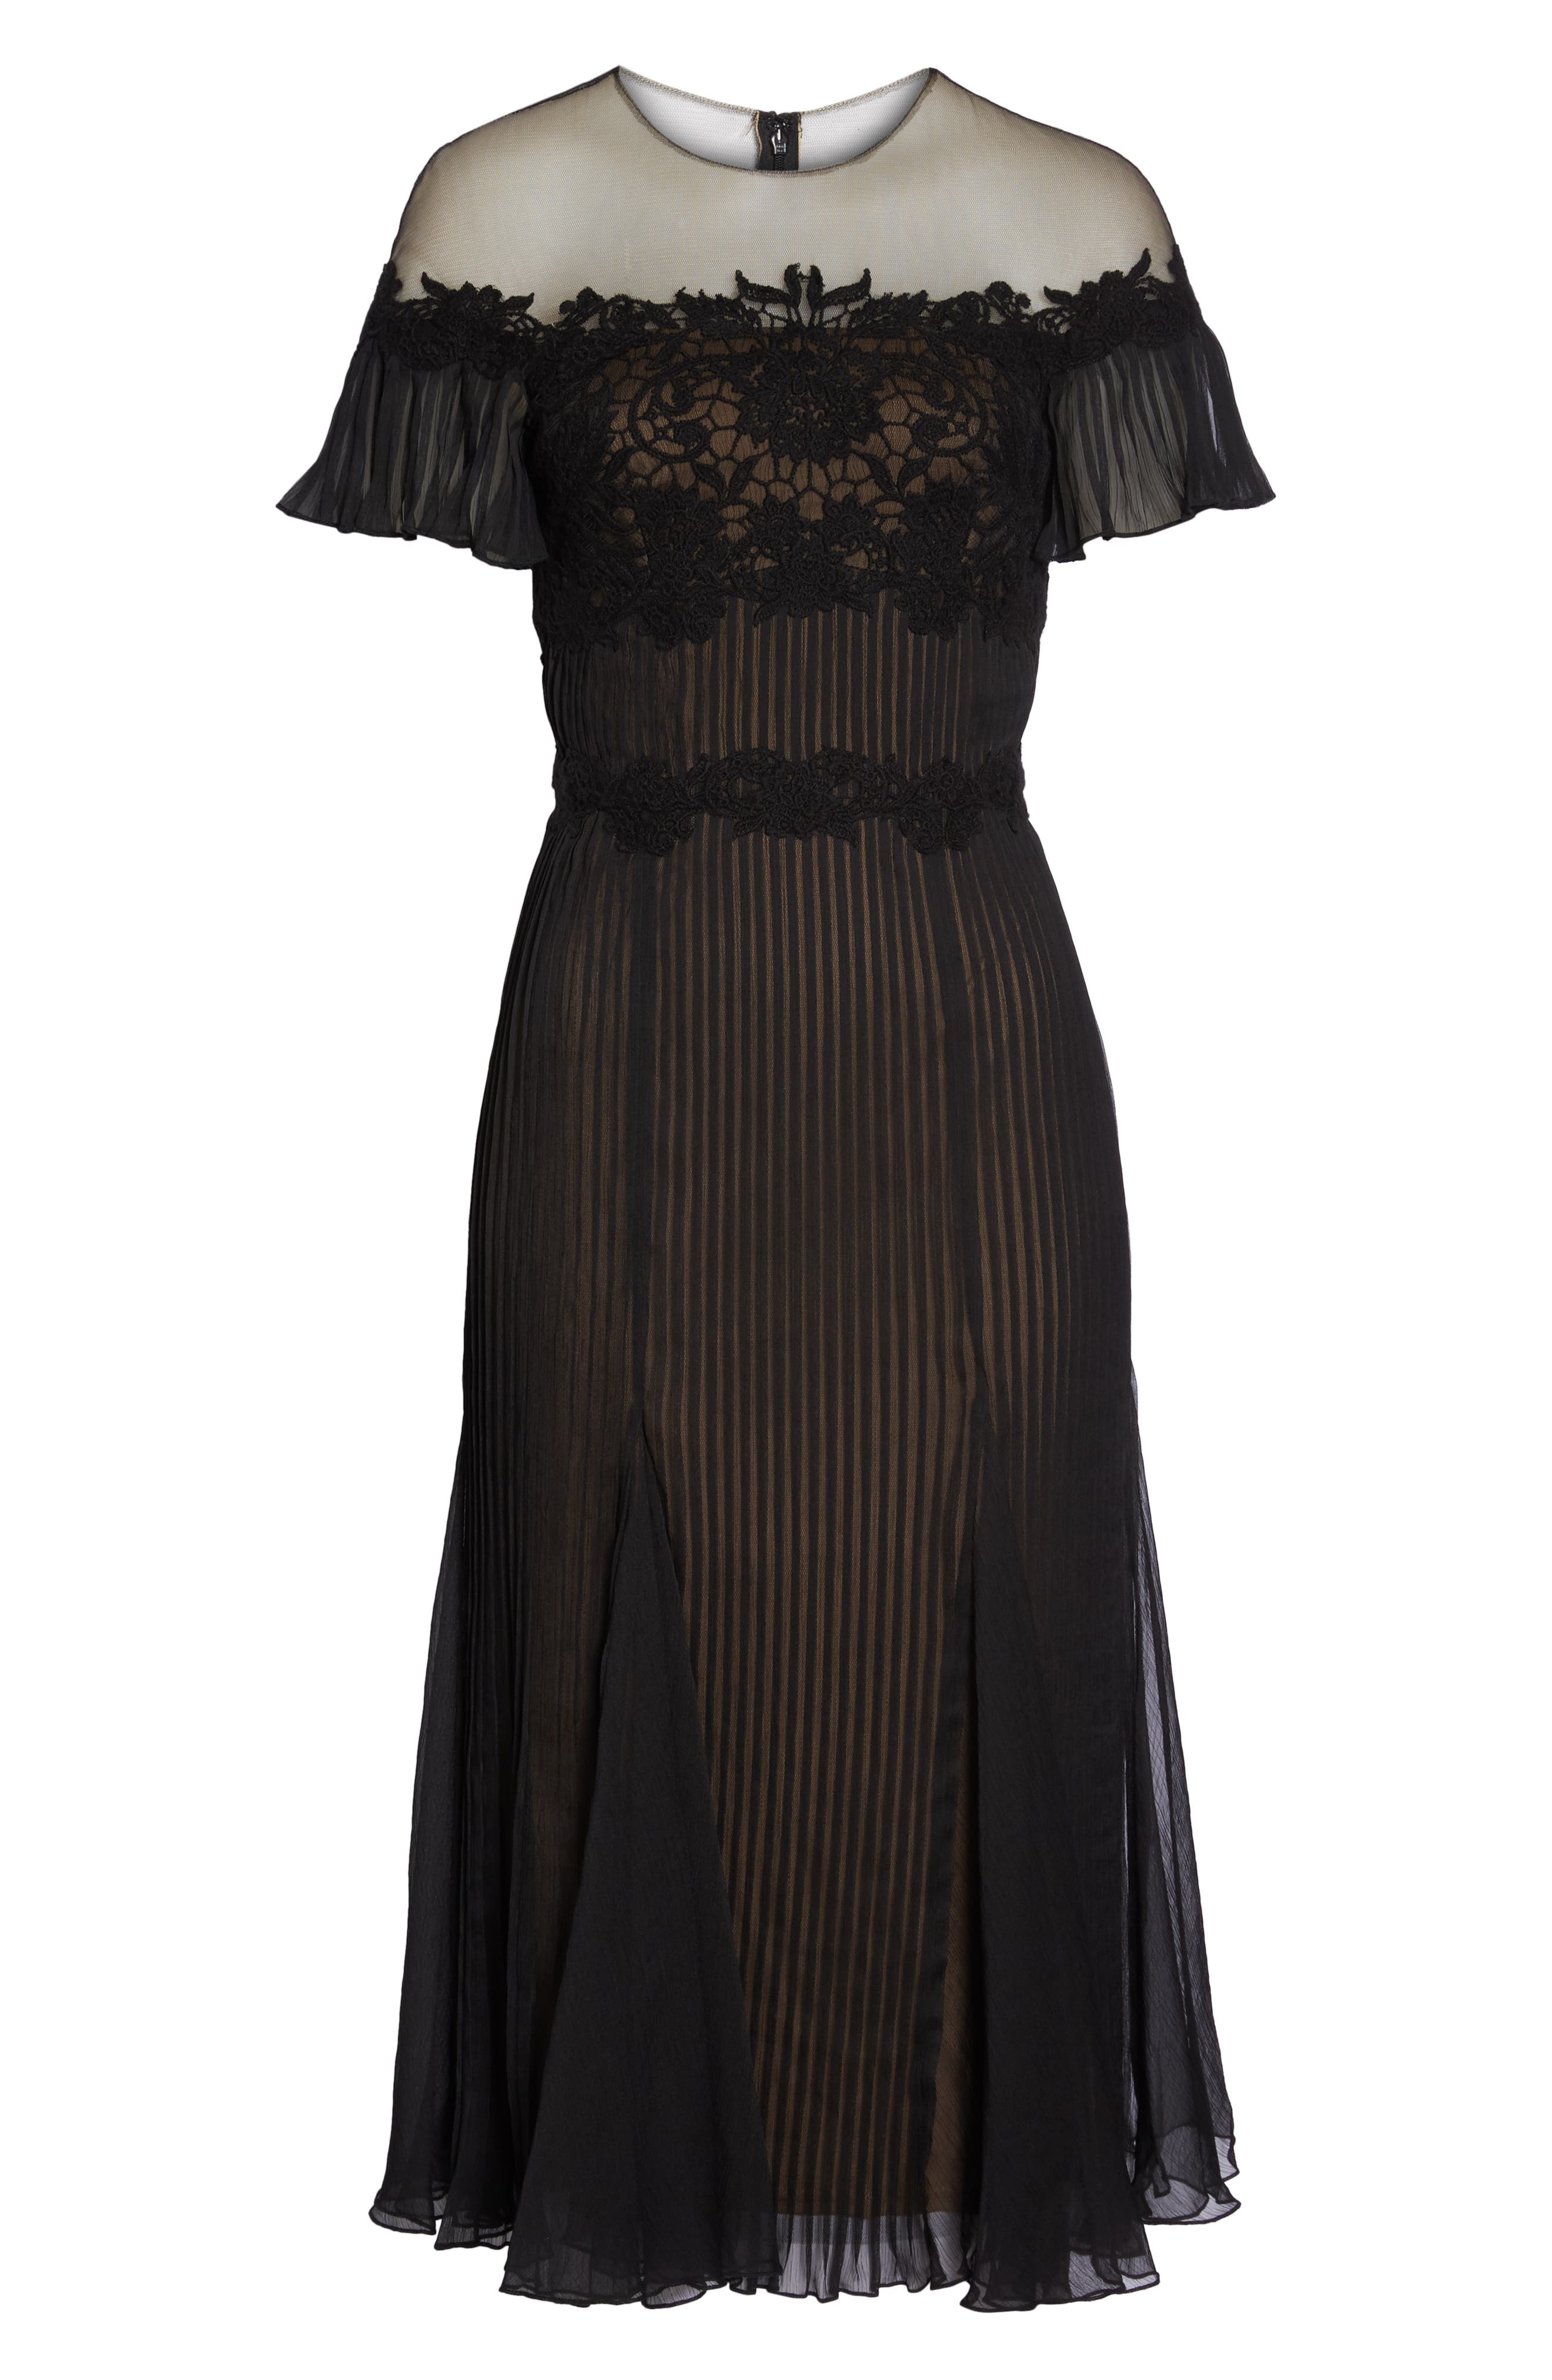 TADASHI SHOJI,                             Lace & Chiffon A-Line Dress,                             Alternate thumbnail 7, color,                             BLACK/ NUDE